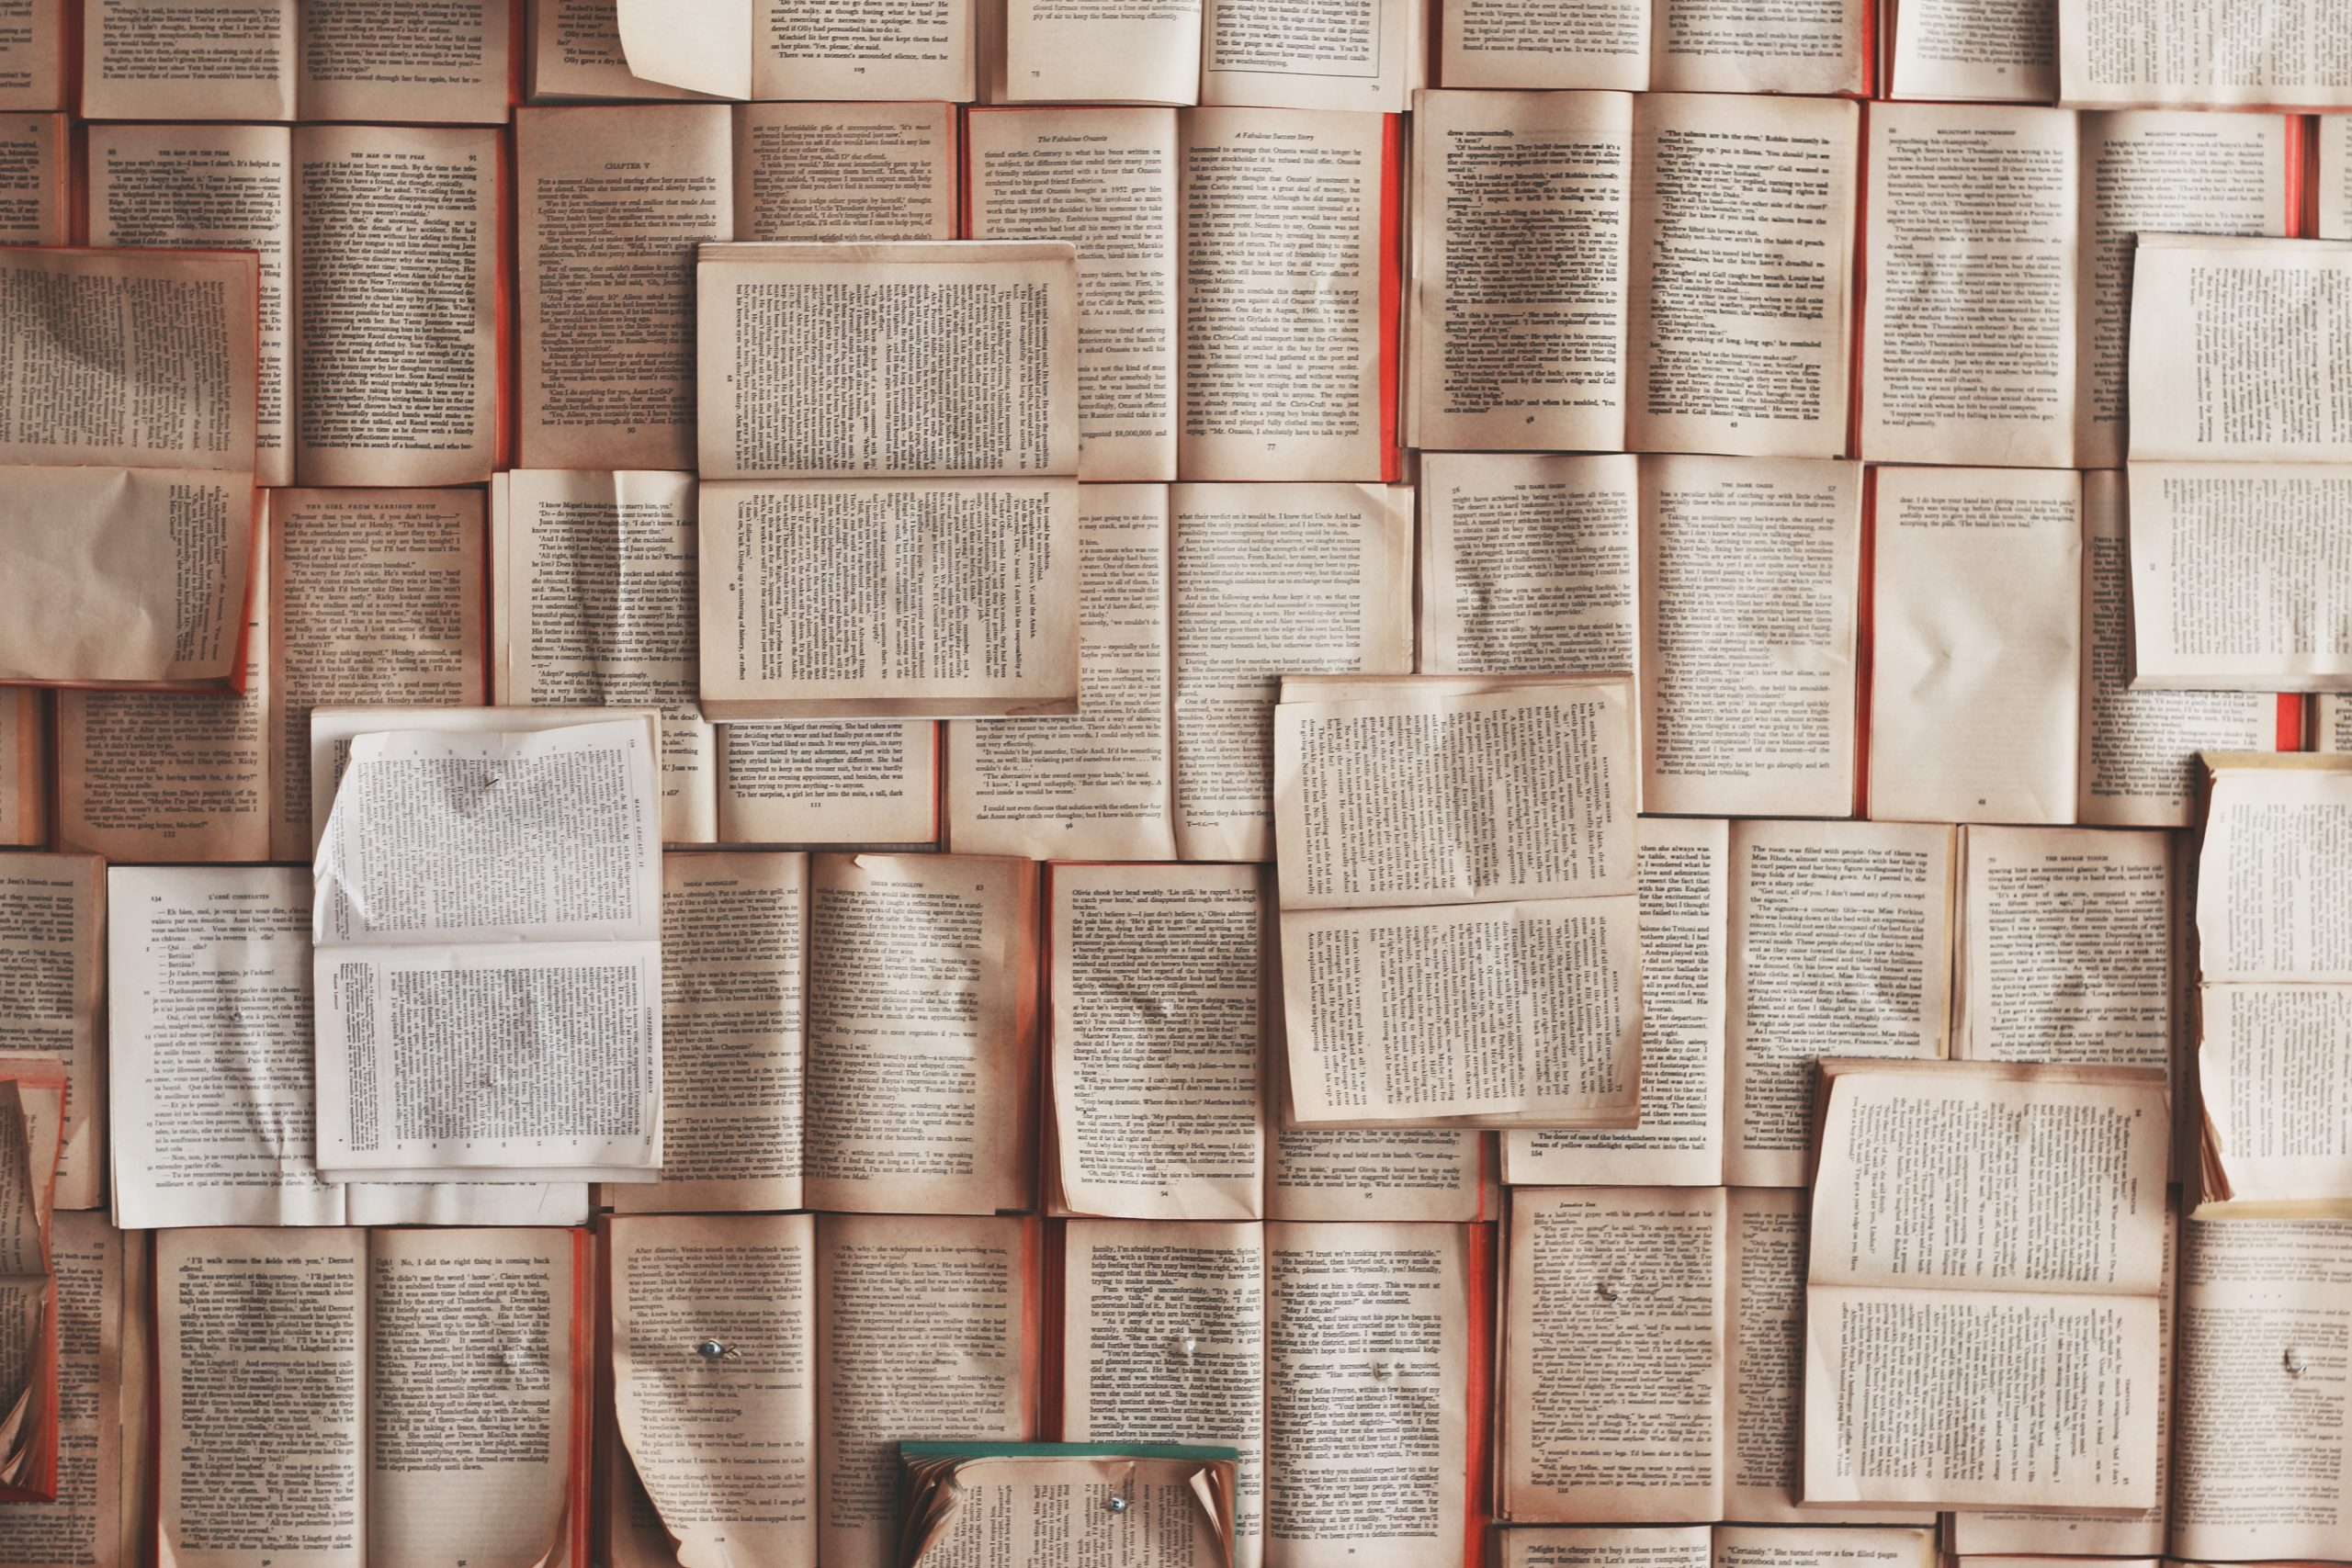 Publishing. Picture of several open books as seen from above. Photo by Patrick Tomasso on Unsplash.